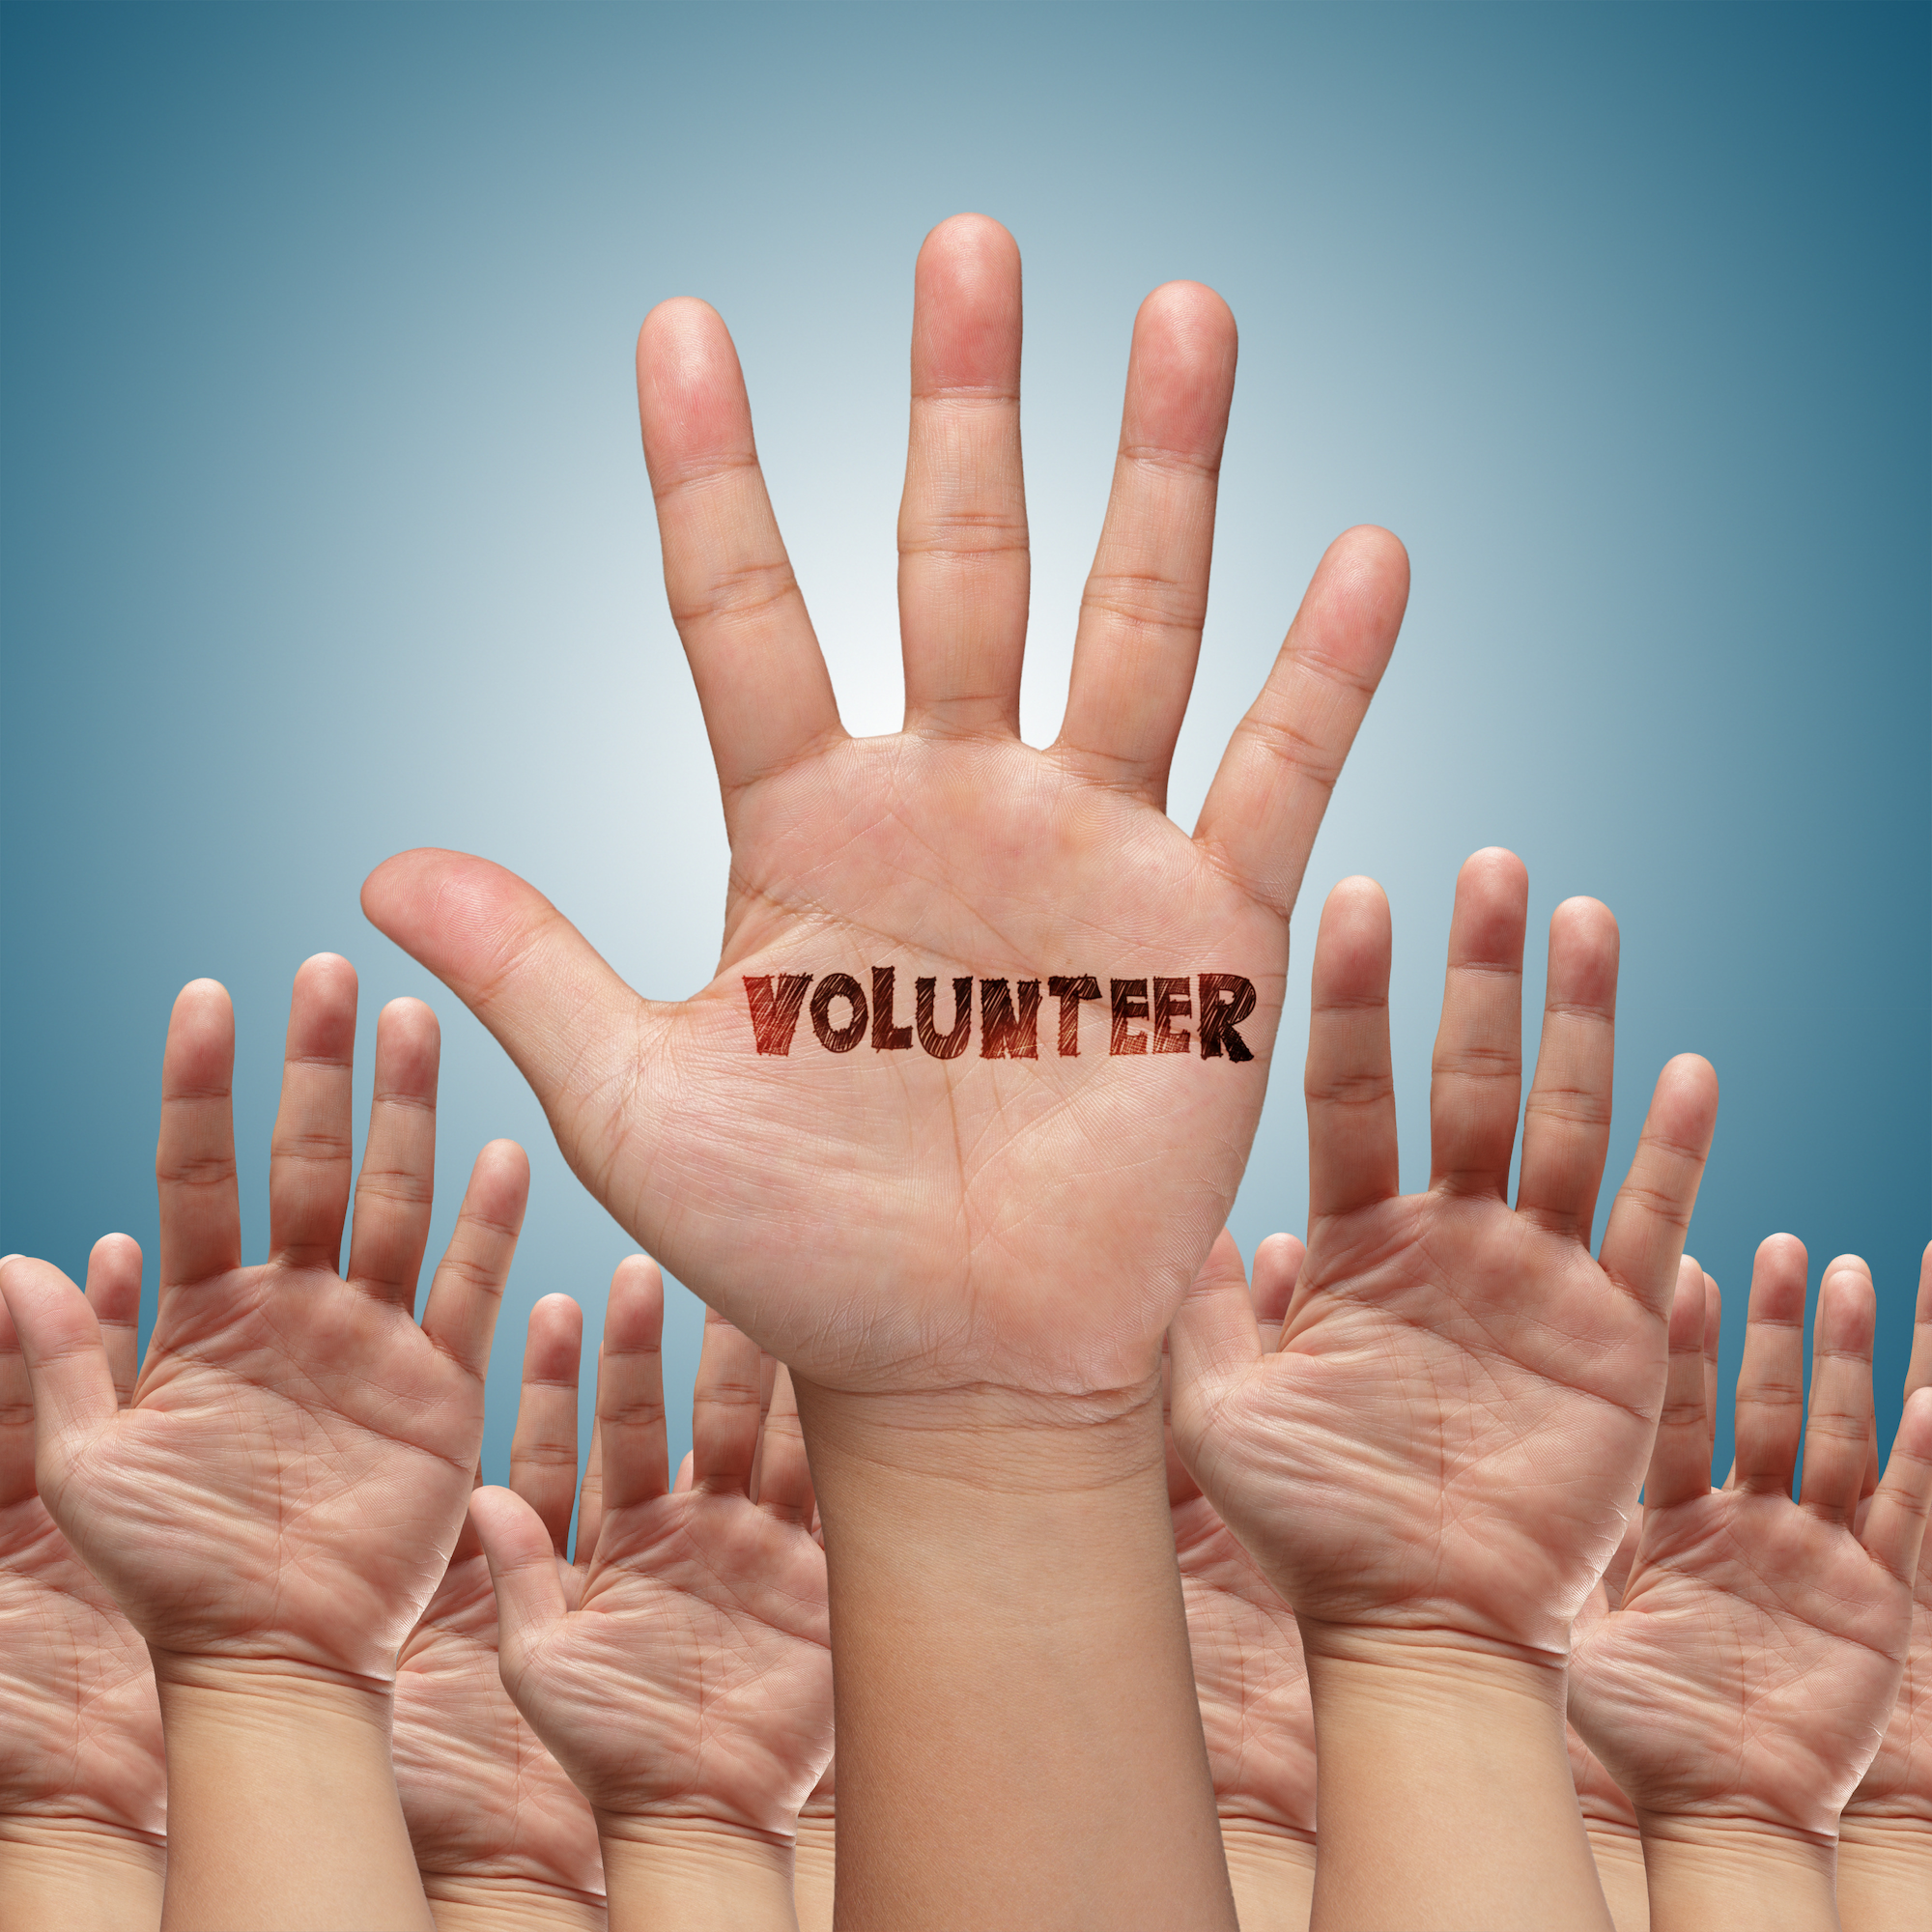 volunteer-group-raising-hands_f1UDr9r_